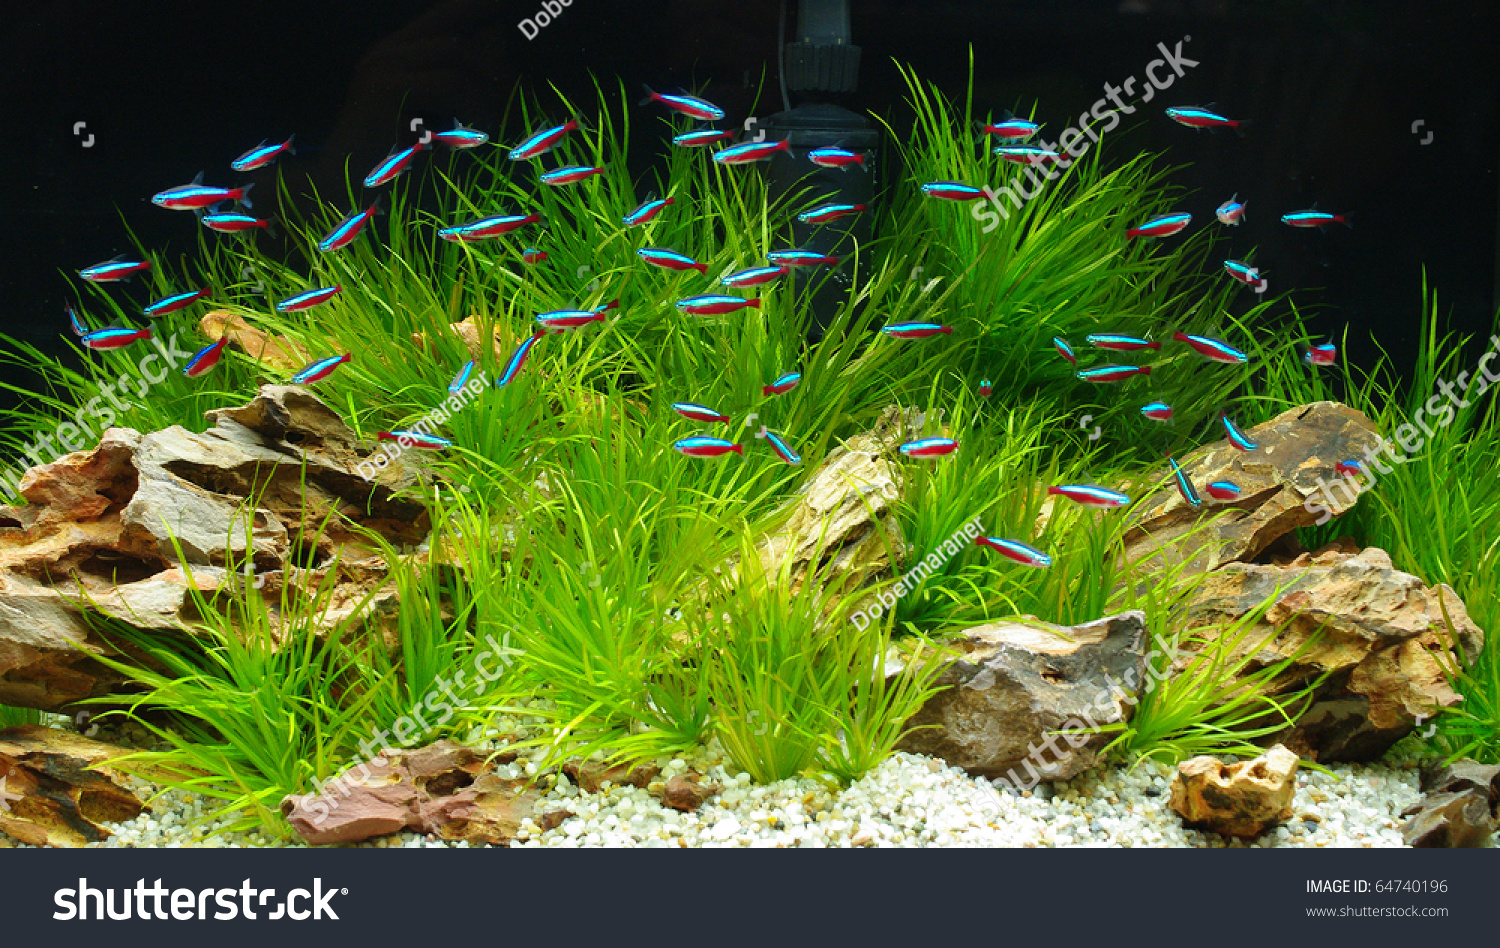 Aquarium neon stock photo 64740196 shutterstock for Neon fish tank